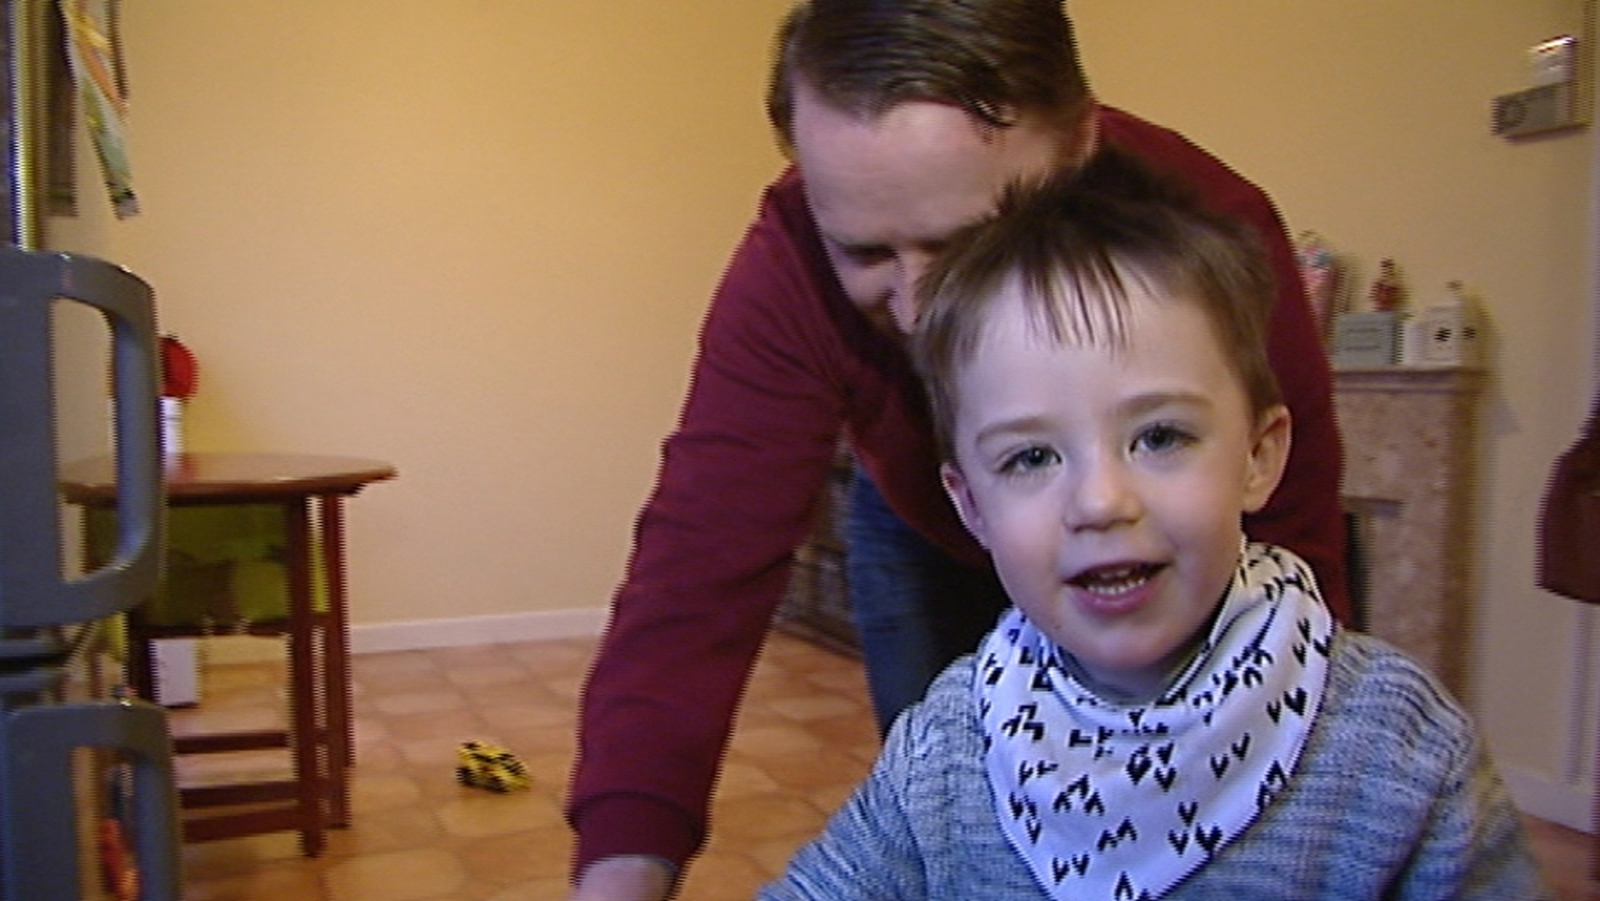 Cork toddler gets cannabis oil permit for epilepsy